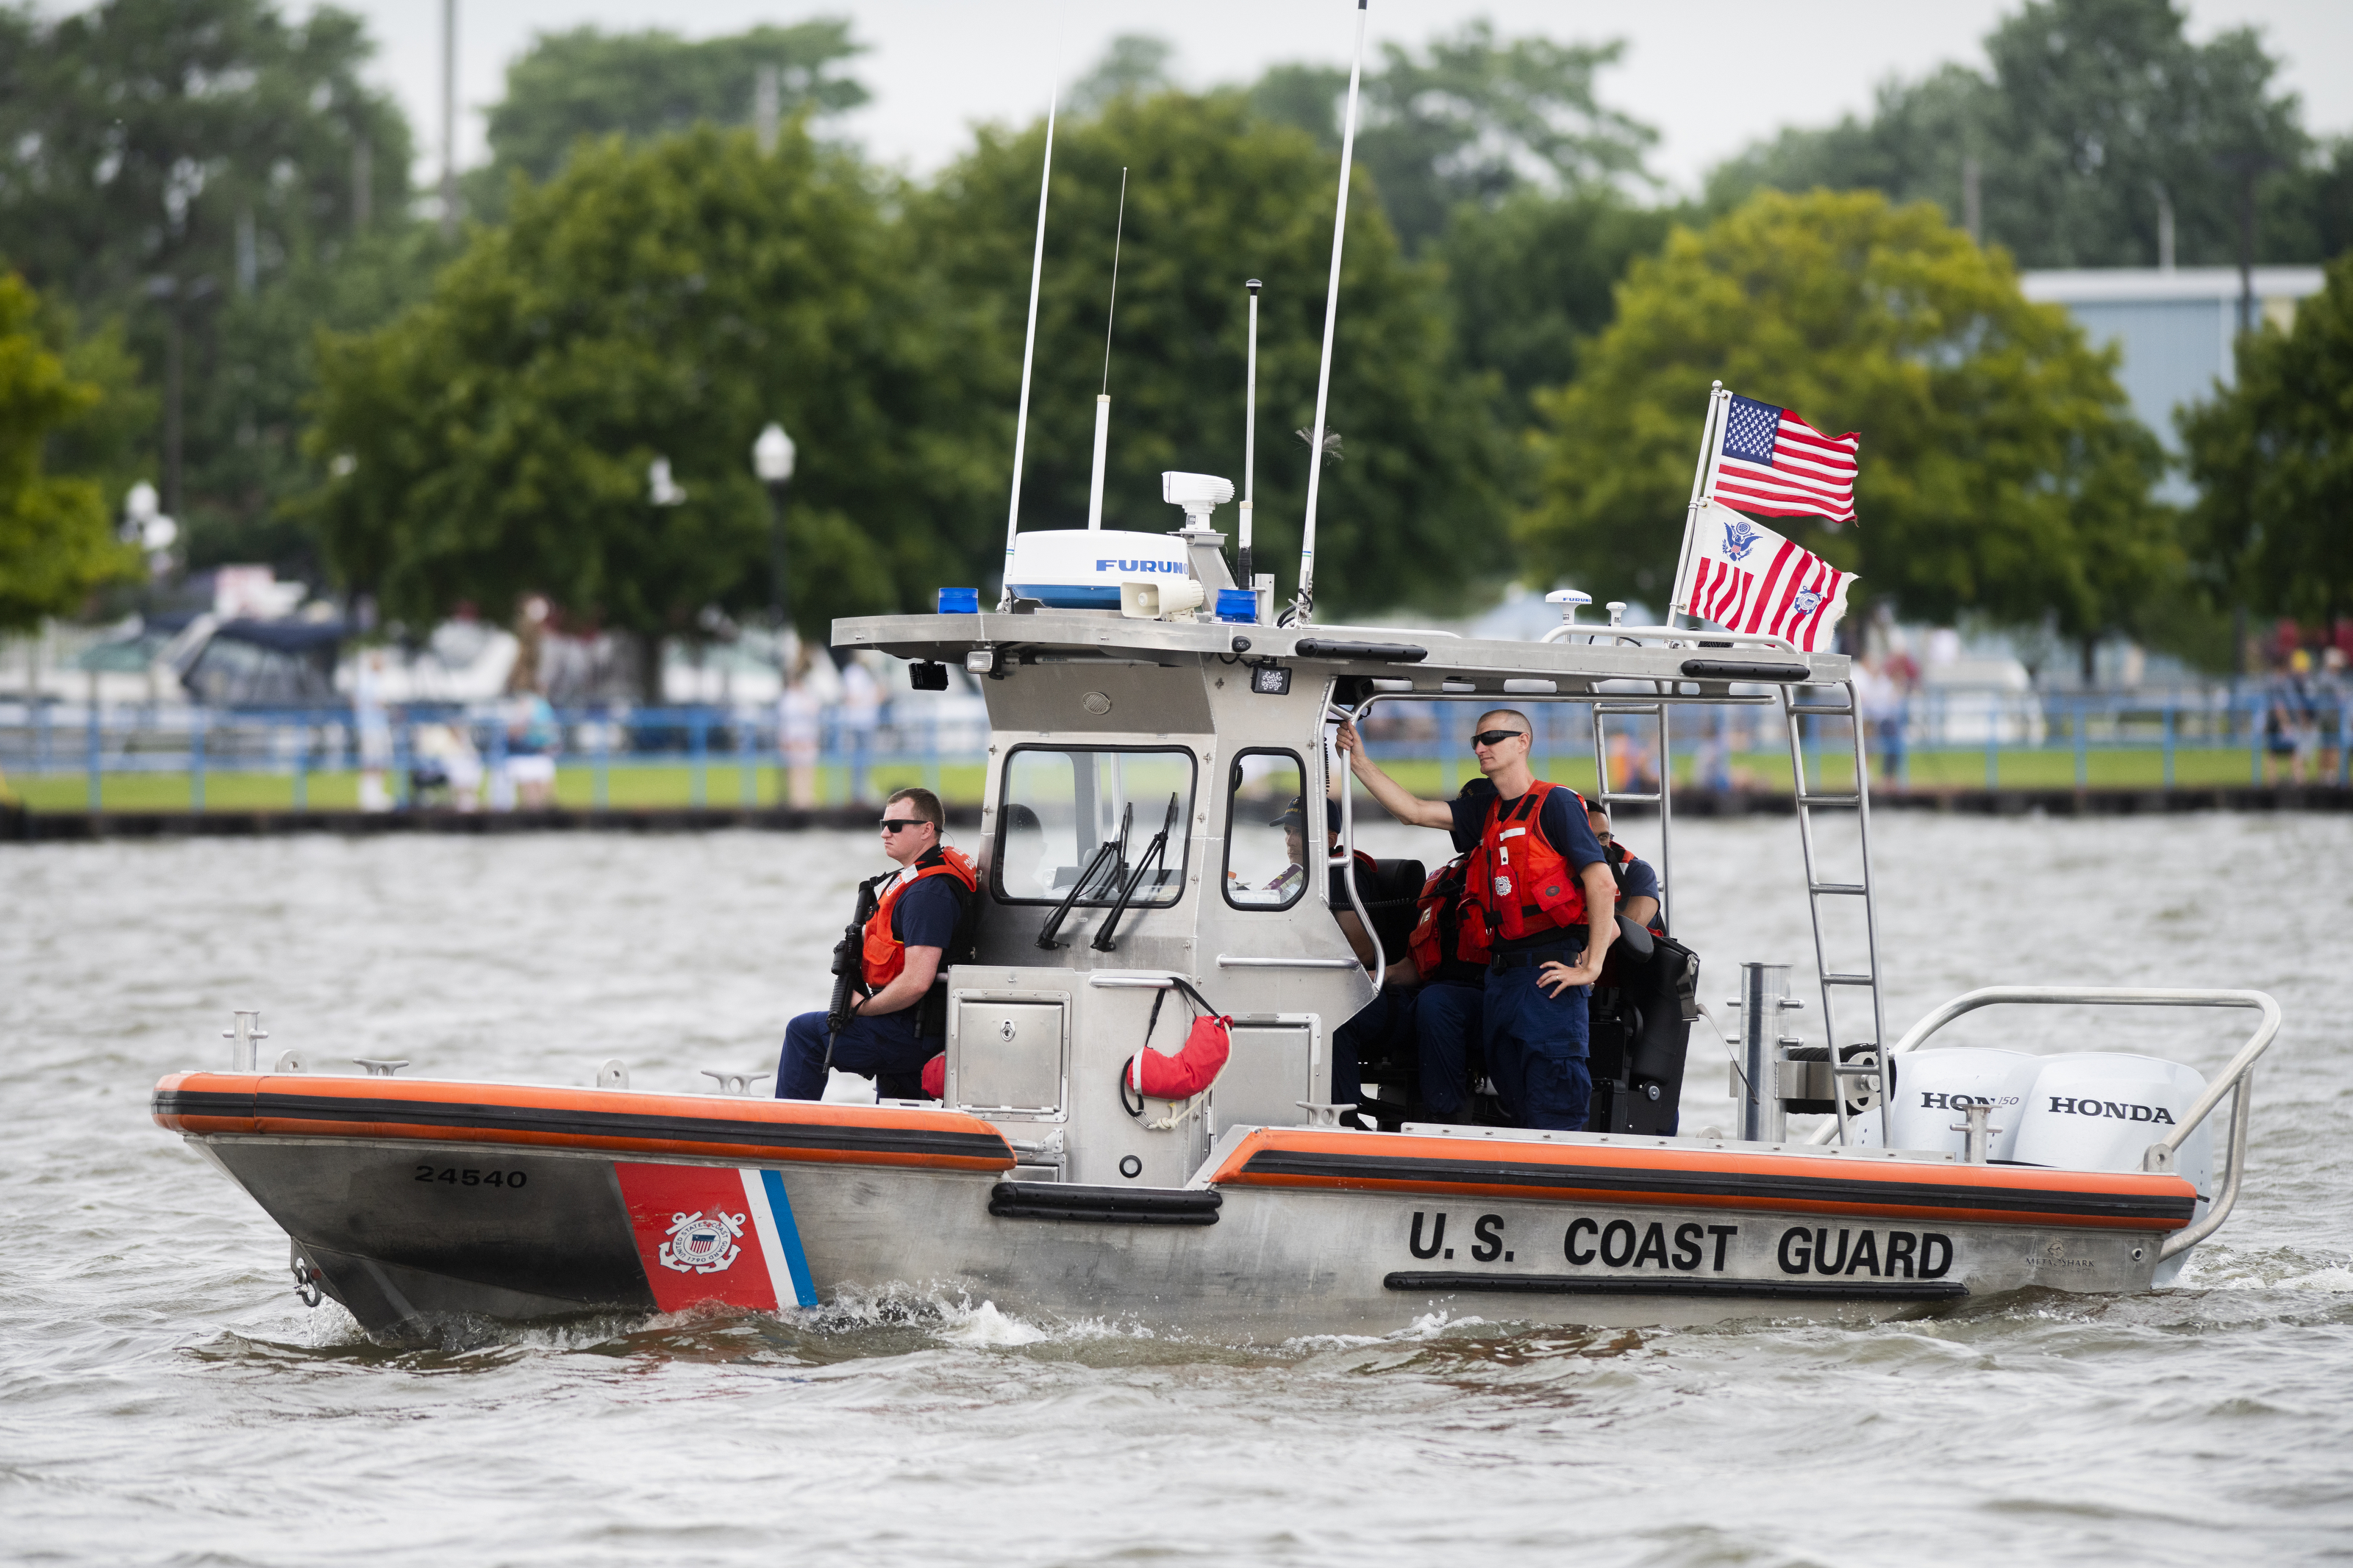 Shipwreck diver in critical after suffering from 'the bends' in Lake Michigan